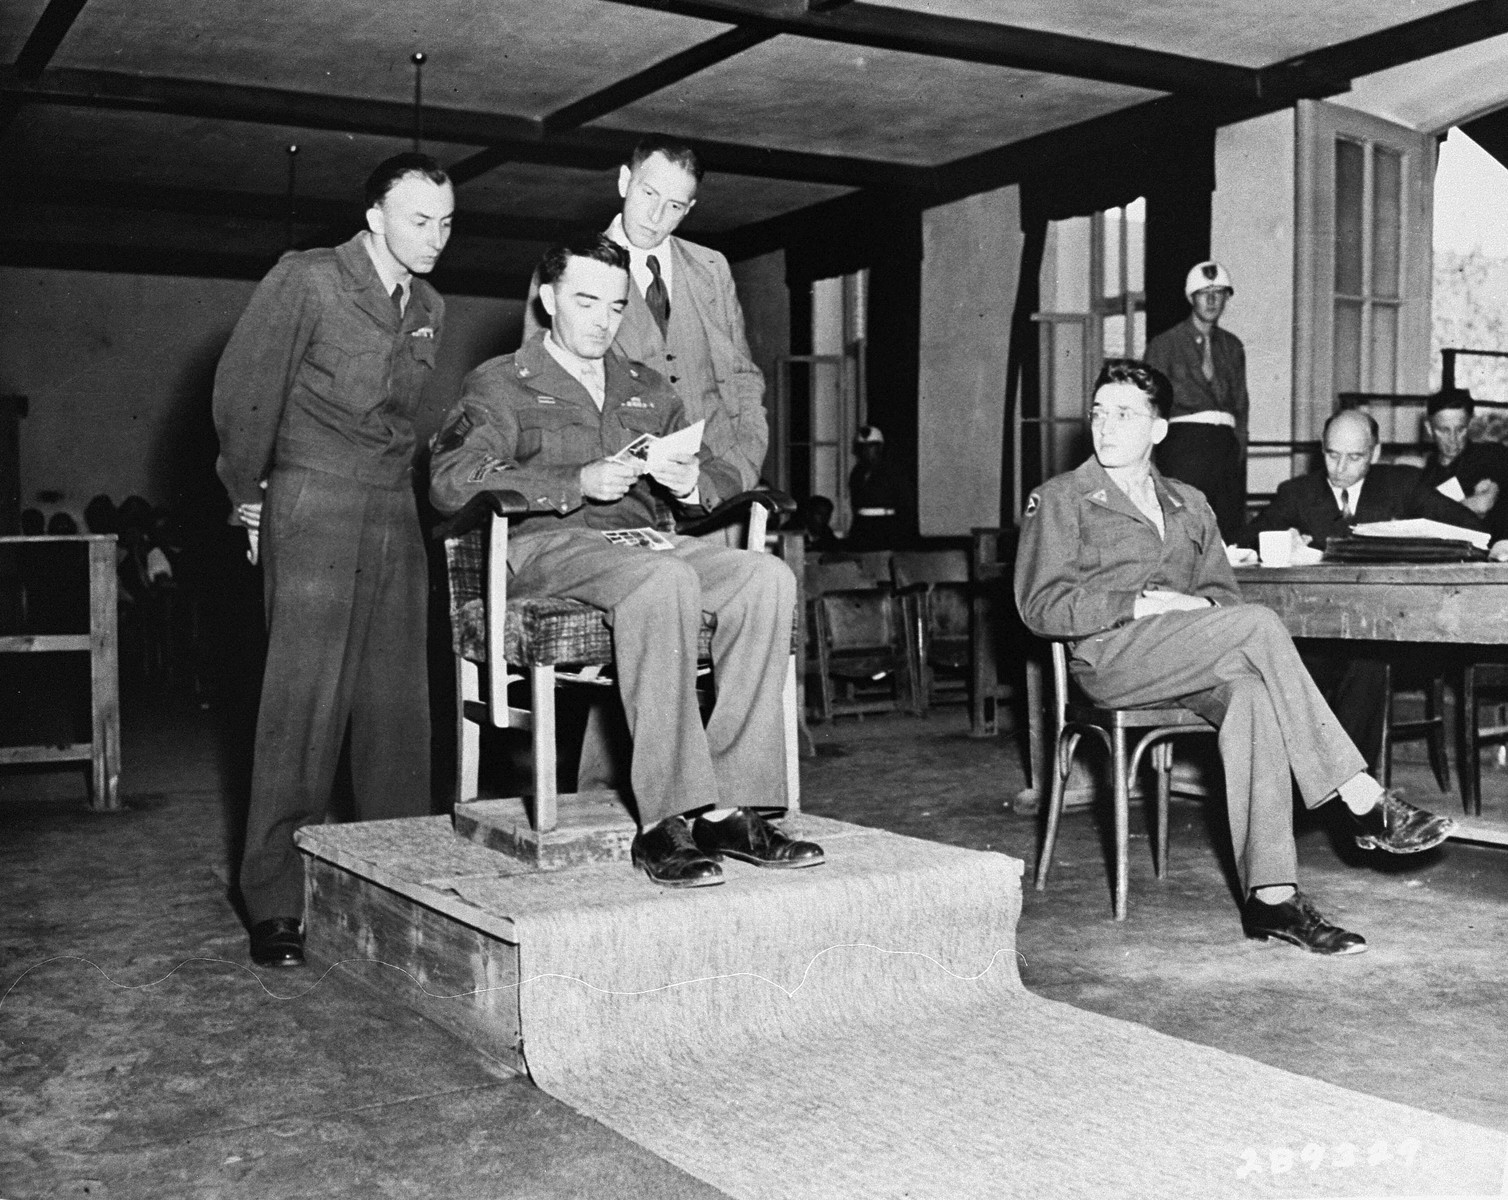 Technical Sergeant Adrian Robertson, a photographer with the U.S. Army Air Corps, identifies photographs from the liberation of Buchenwald as a witness for the prosecution at the trial of former camp personnel and prisoners from the Buchenwald concentration camp.    Court personnel pictured from left to right are: U.S. Chief Prosecutor William Denson; Technical Sergeant Robertson; defense attorney Dr. Richard Wacker; and interpreter Herbert Rosenstock.